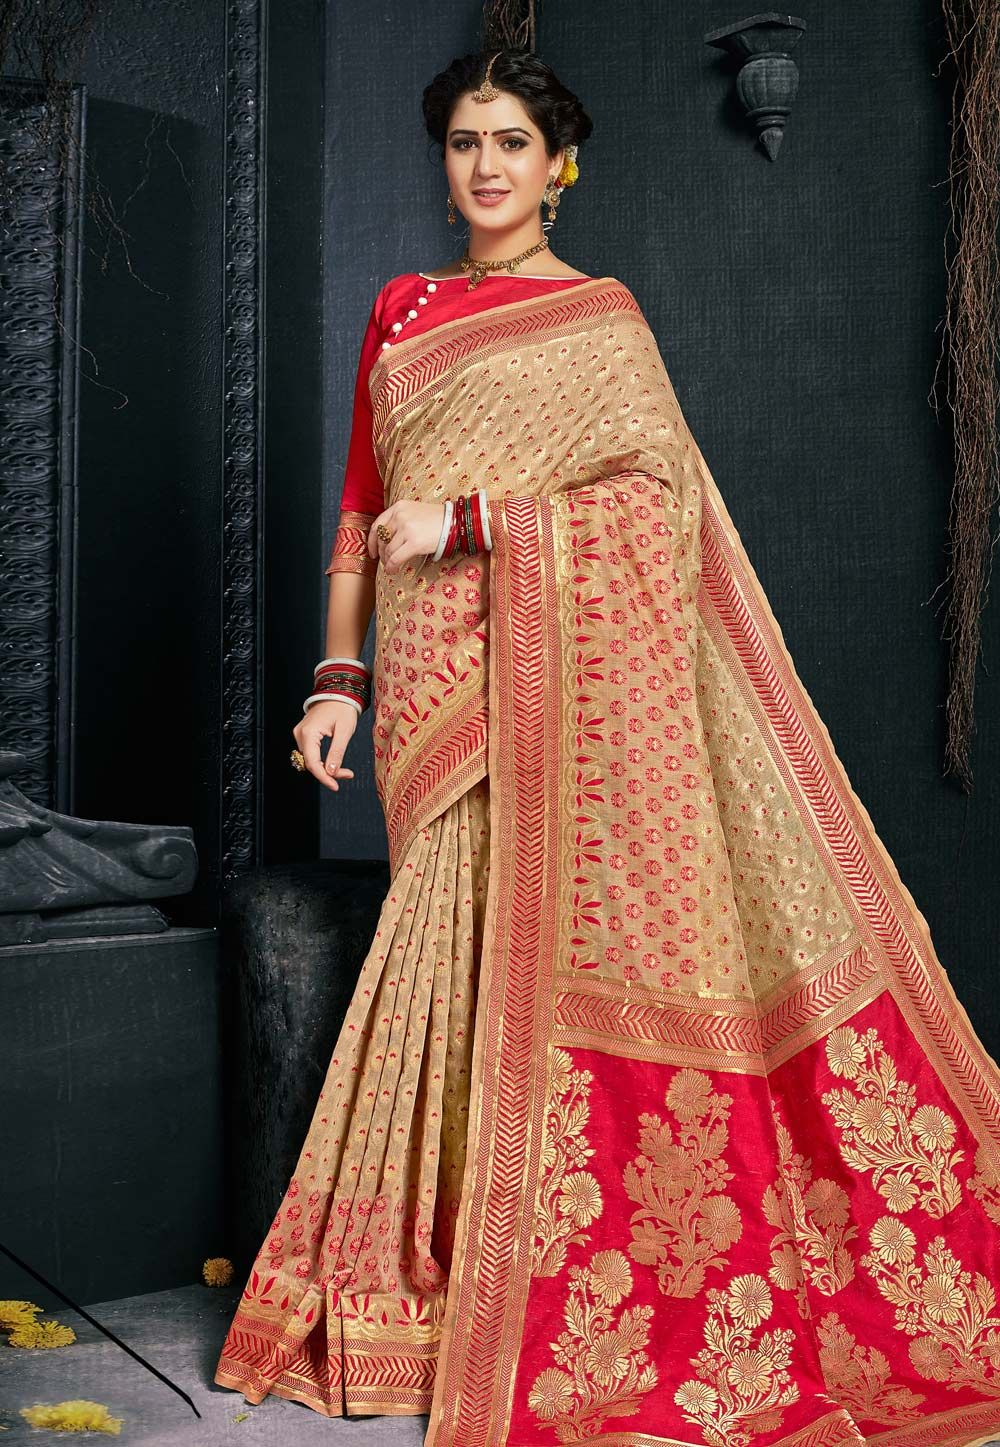 ba1b5e6a4b Buy Beige Silk Saree With Blouse 154016 with blouse online at lowest price  from vast collection of sarees at Indianclothstore.com.